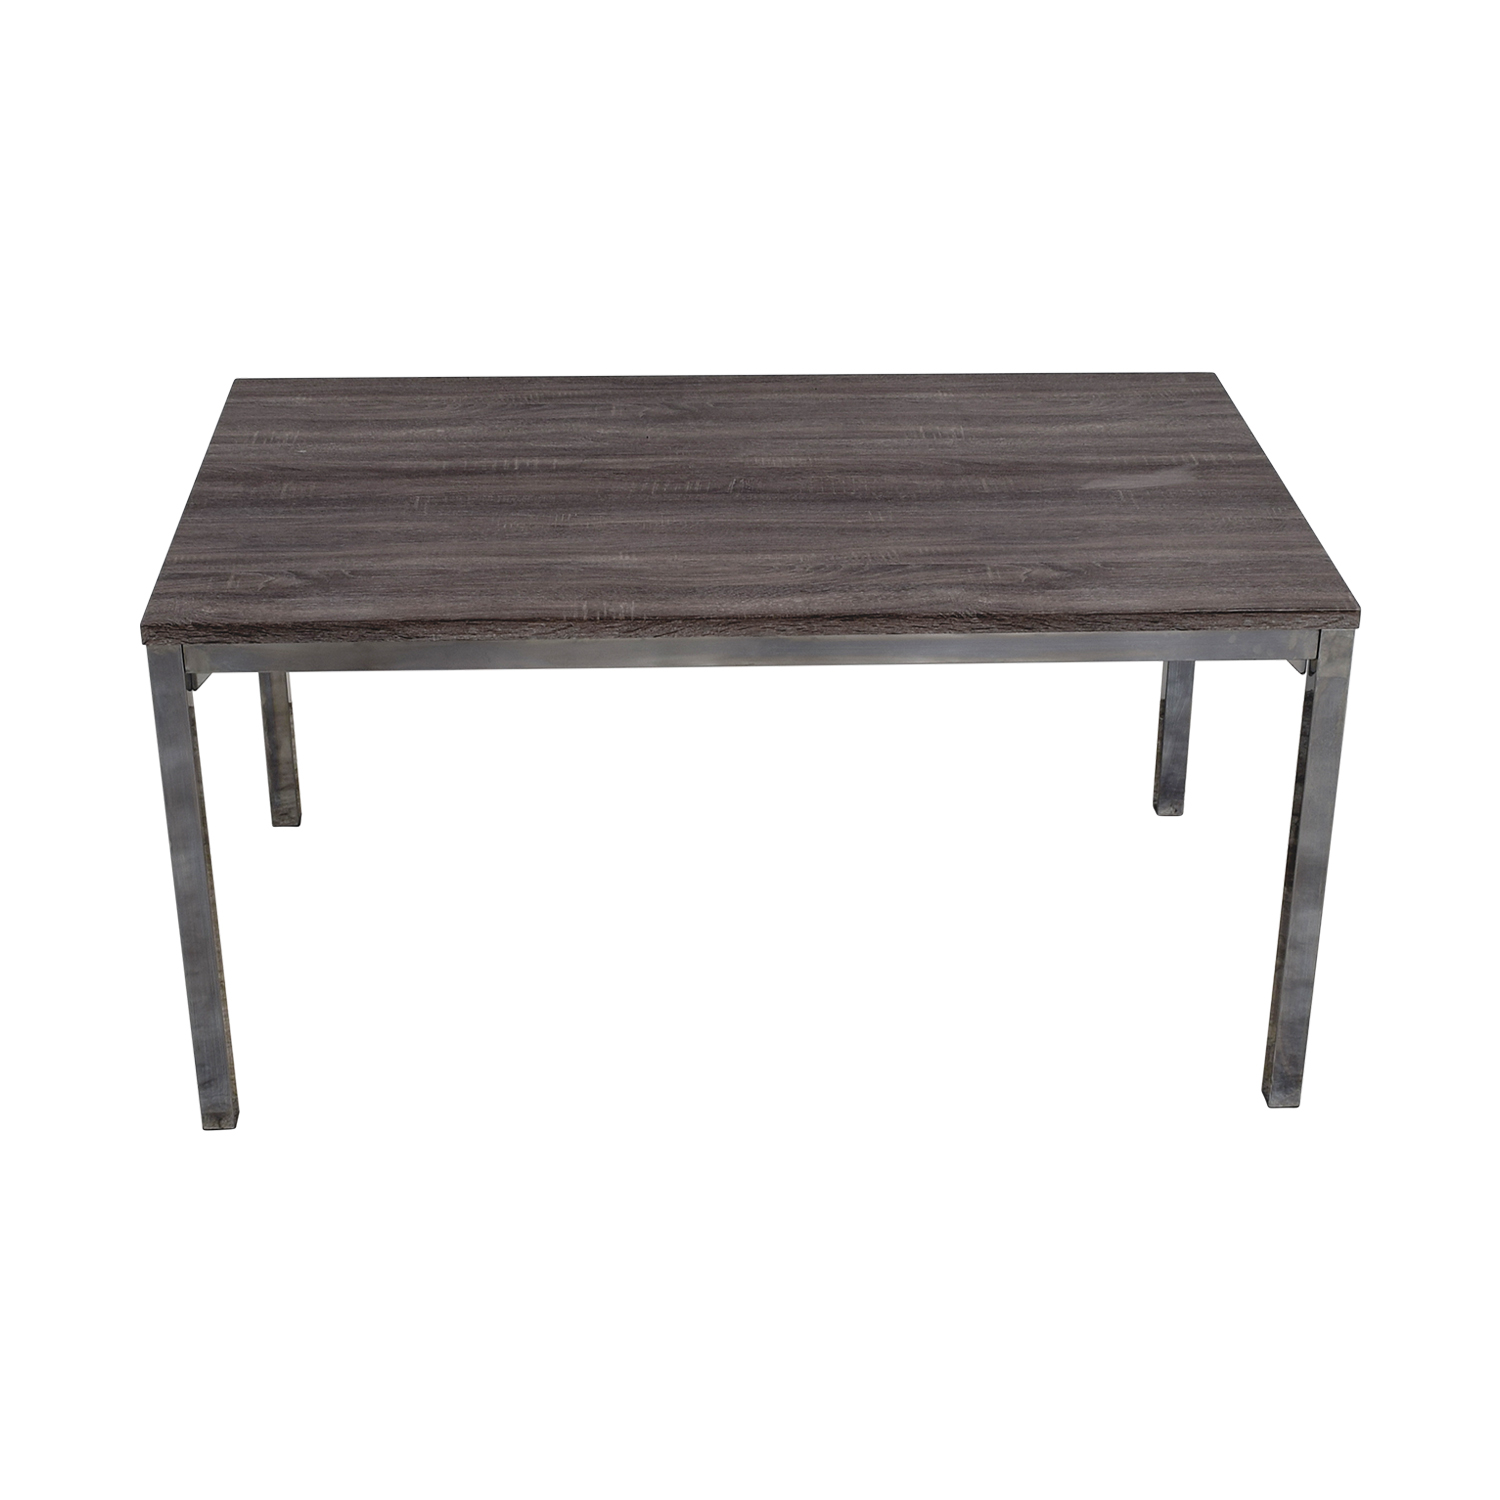 buy Wildon Home Rustic Wood Top and Chrome Dining Table Wildon Home Dinner Tables